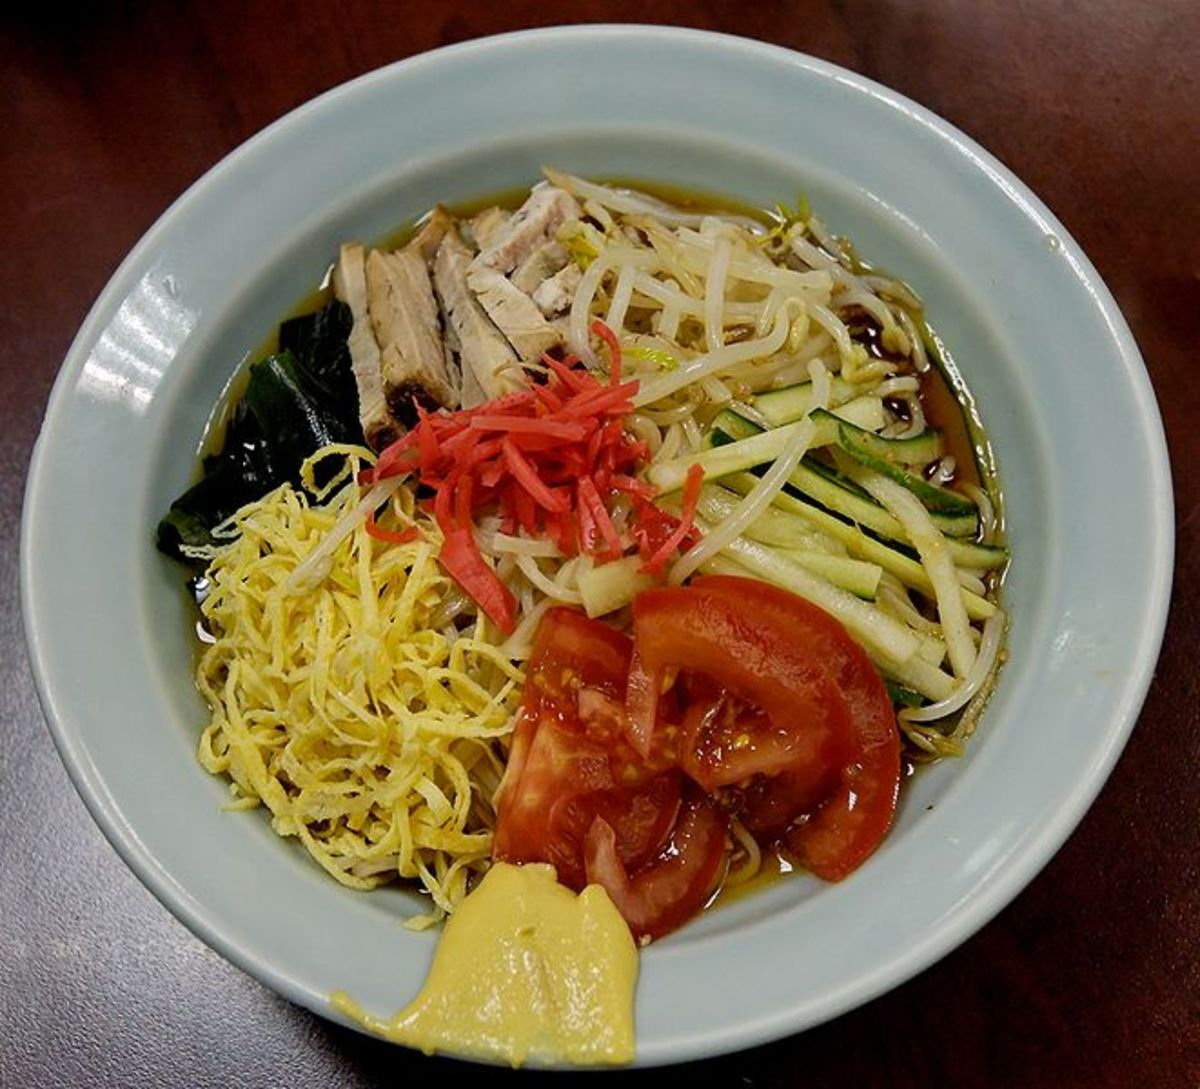 This cold dish is of noodles, pork, omelette shreds, wakame seaweed and cucumber in a vinegar base sauce or soup. (public domain)